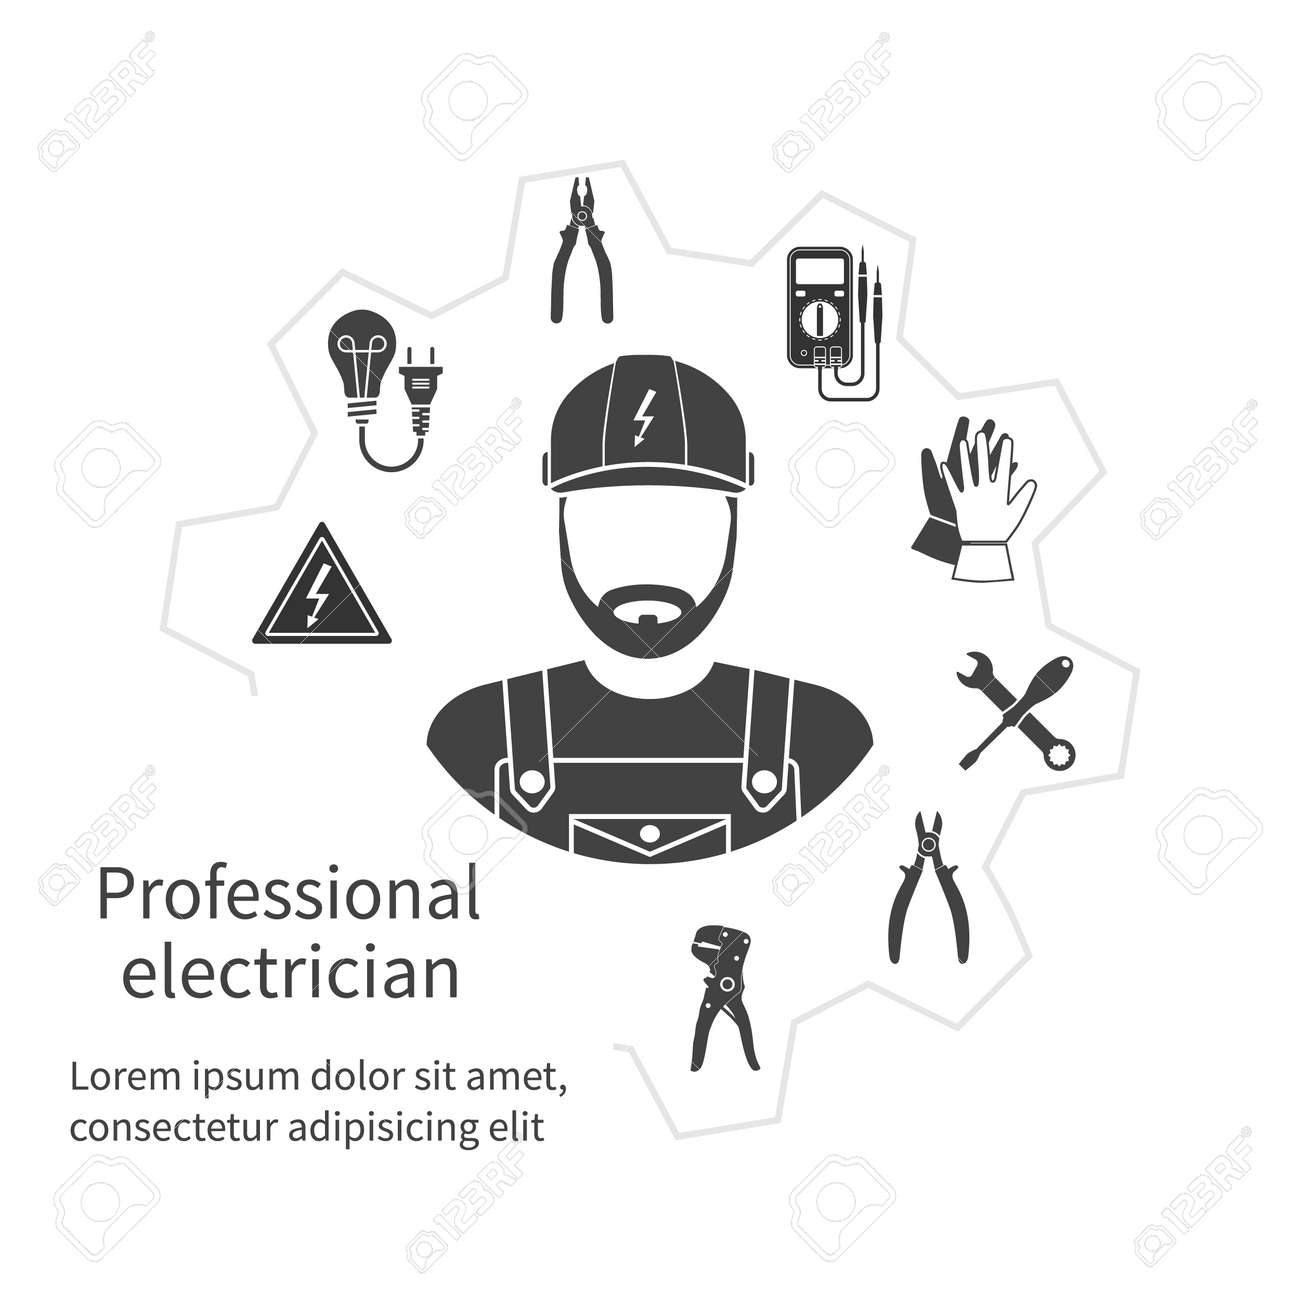 Concept of profession electrician. Repair and maintenance of electricity. Electricity service. Electricians tools, equipment. Banner, template, logo, background. Vector. Electrician occupation. - 53173674